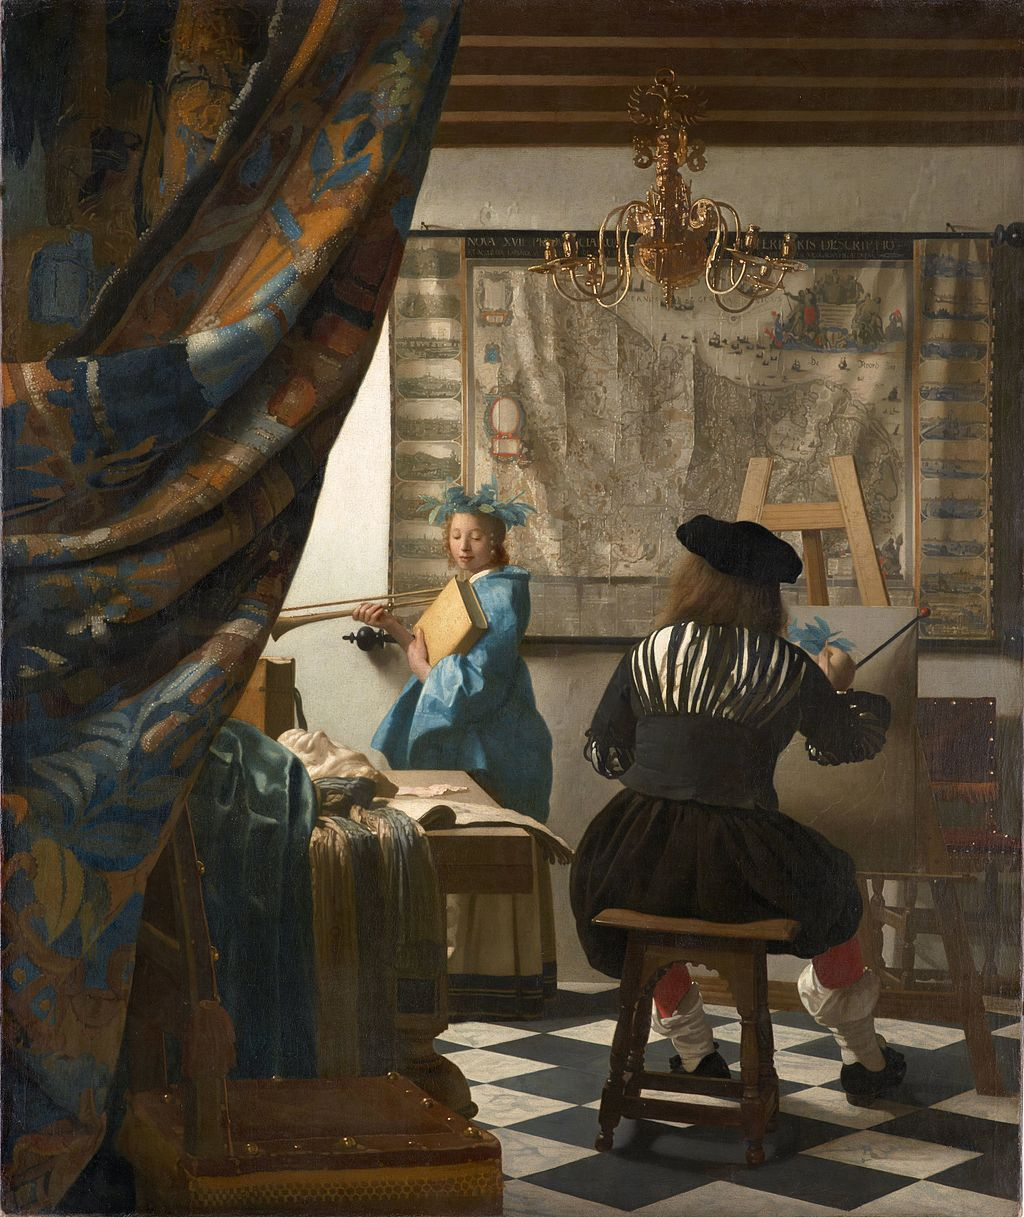 Vermeer's Art of Painting or The Allegory of Painting (c. 1666-1668)